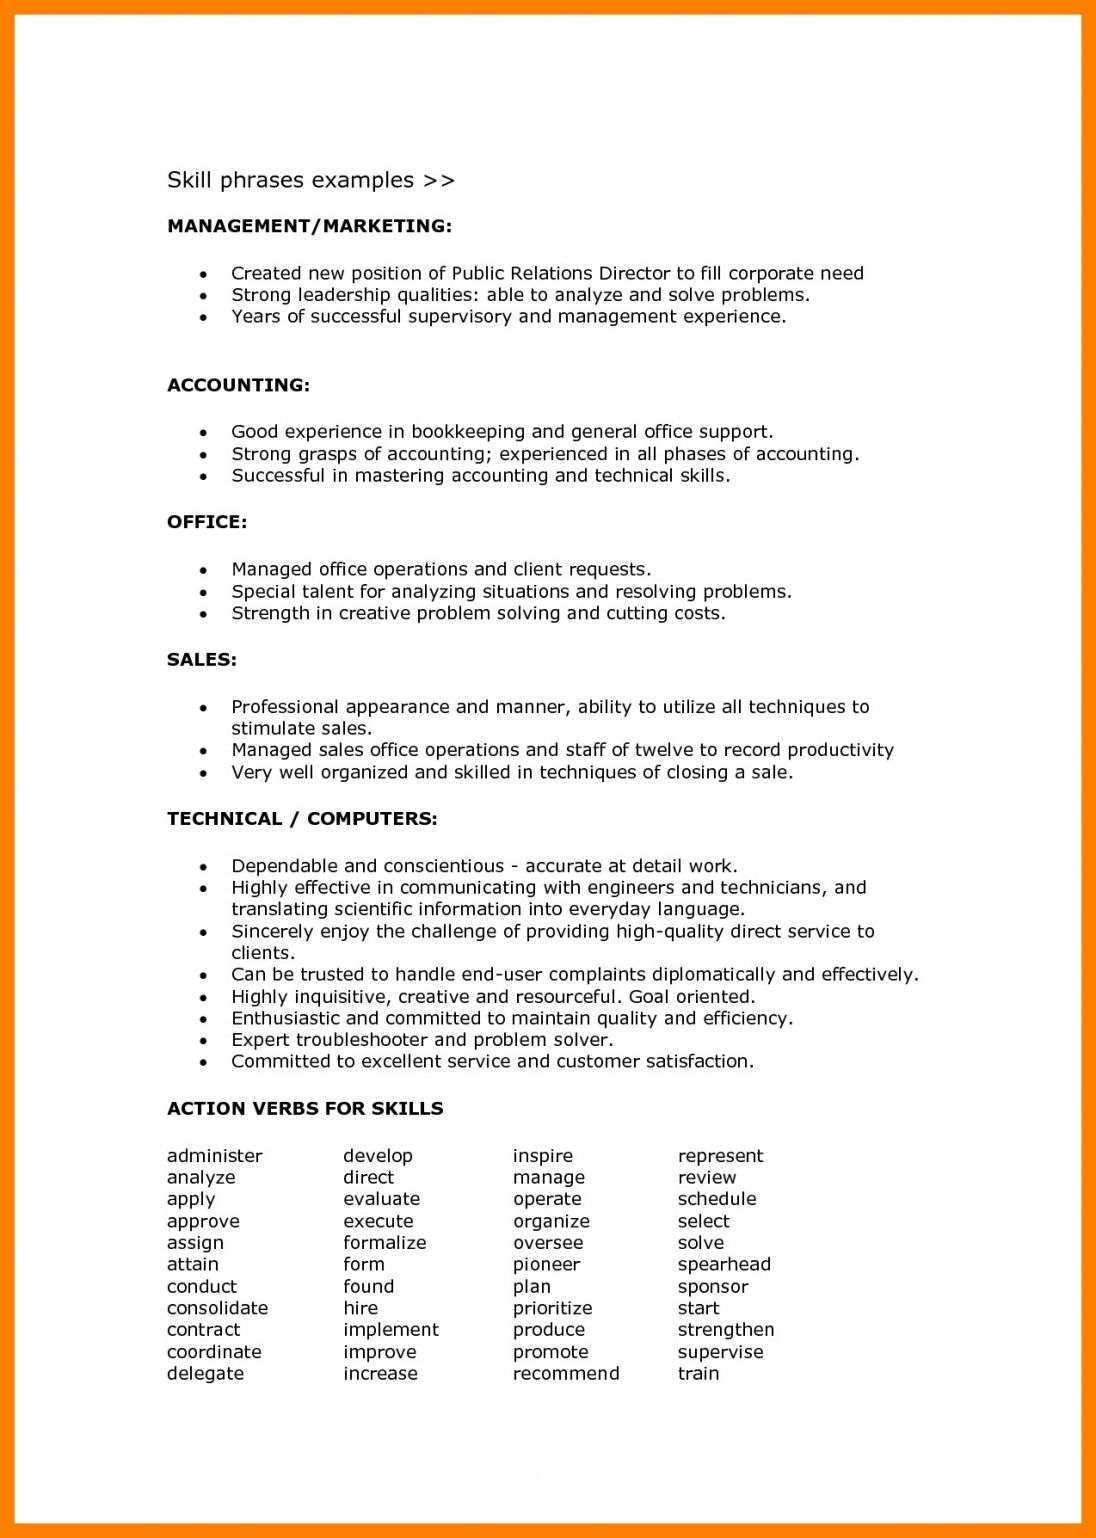 99 Key Skills For A Resume Best List Of Examples For All Jobs